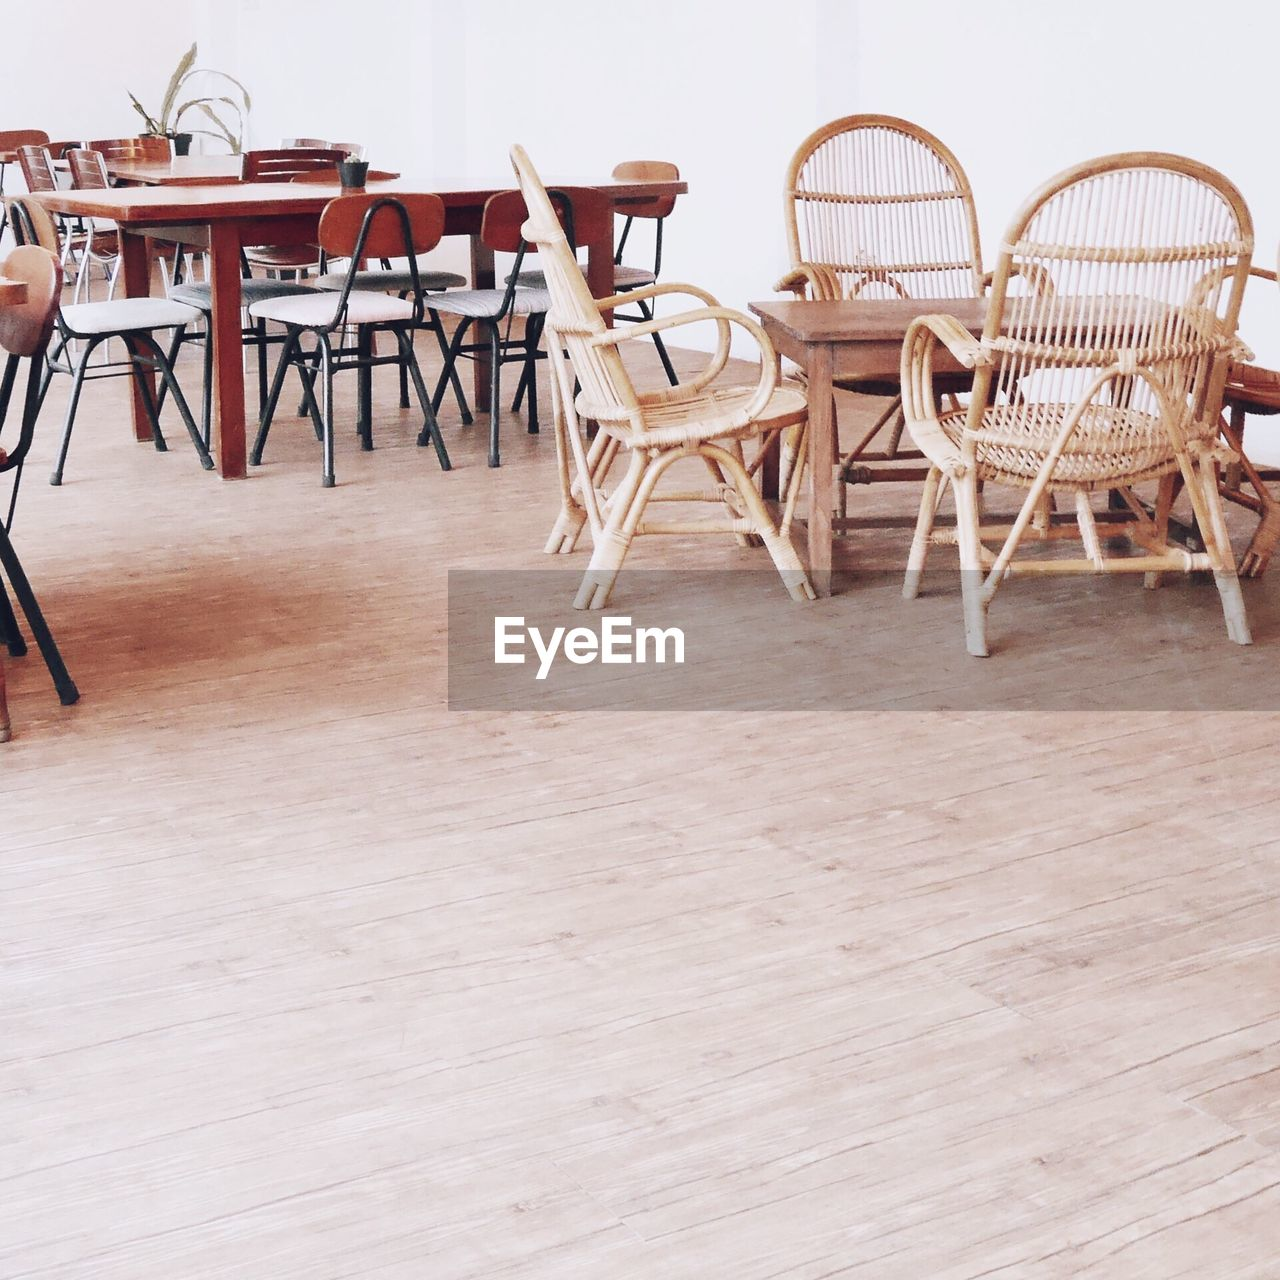 seat, chair, table, wood - material, furniture, no people, absence, indoors, empty, flooring, wood, cafe, day, hardwood floor, brown, basket, wicker, restaurant, nature, architecture, setting